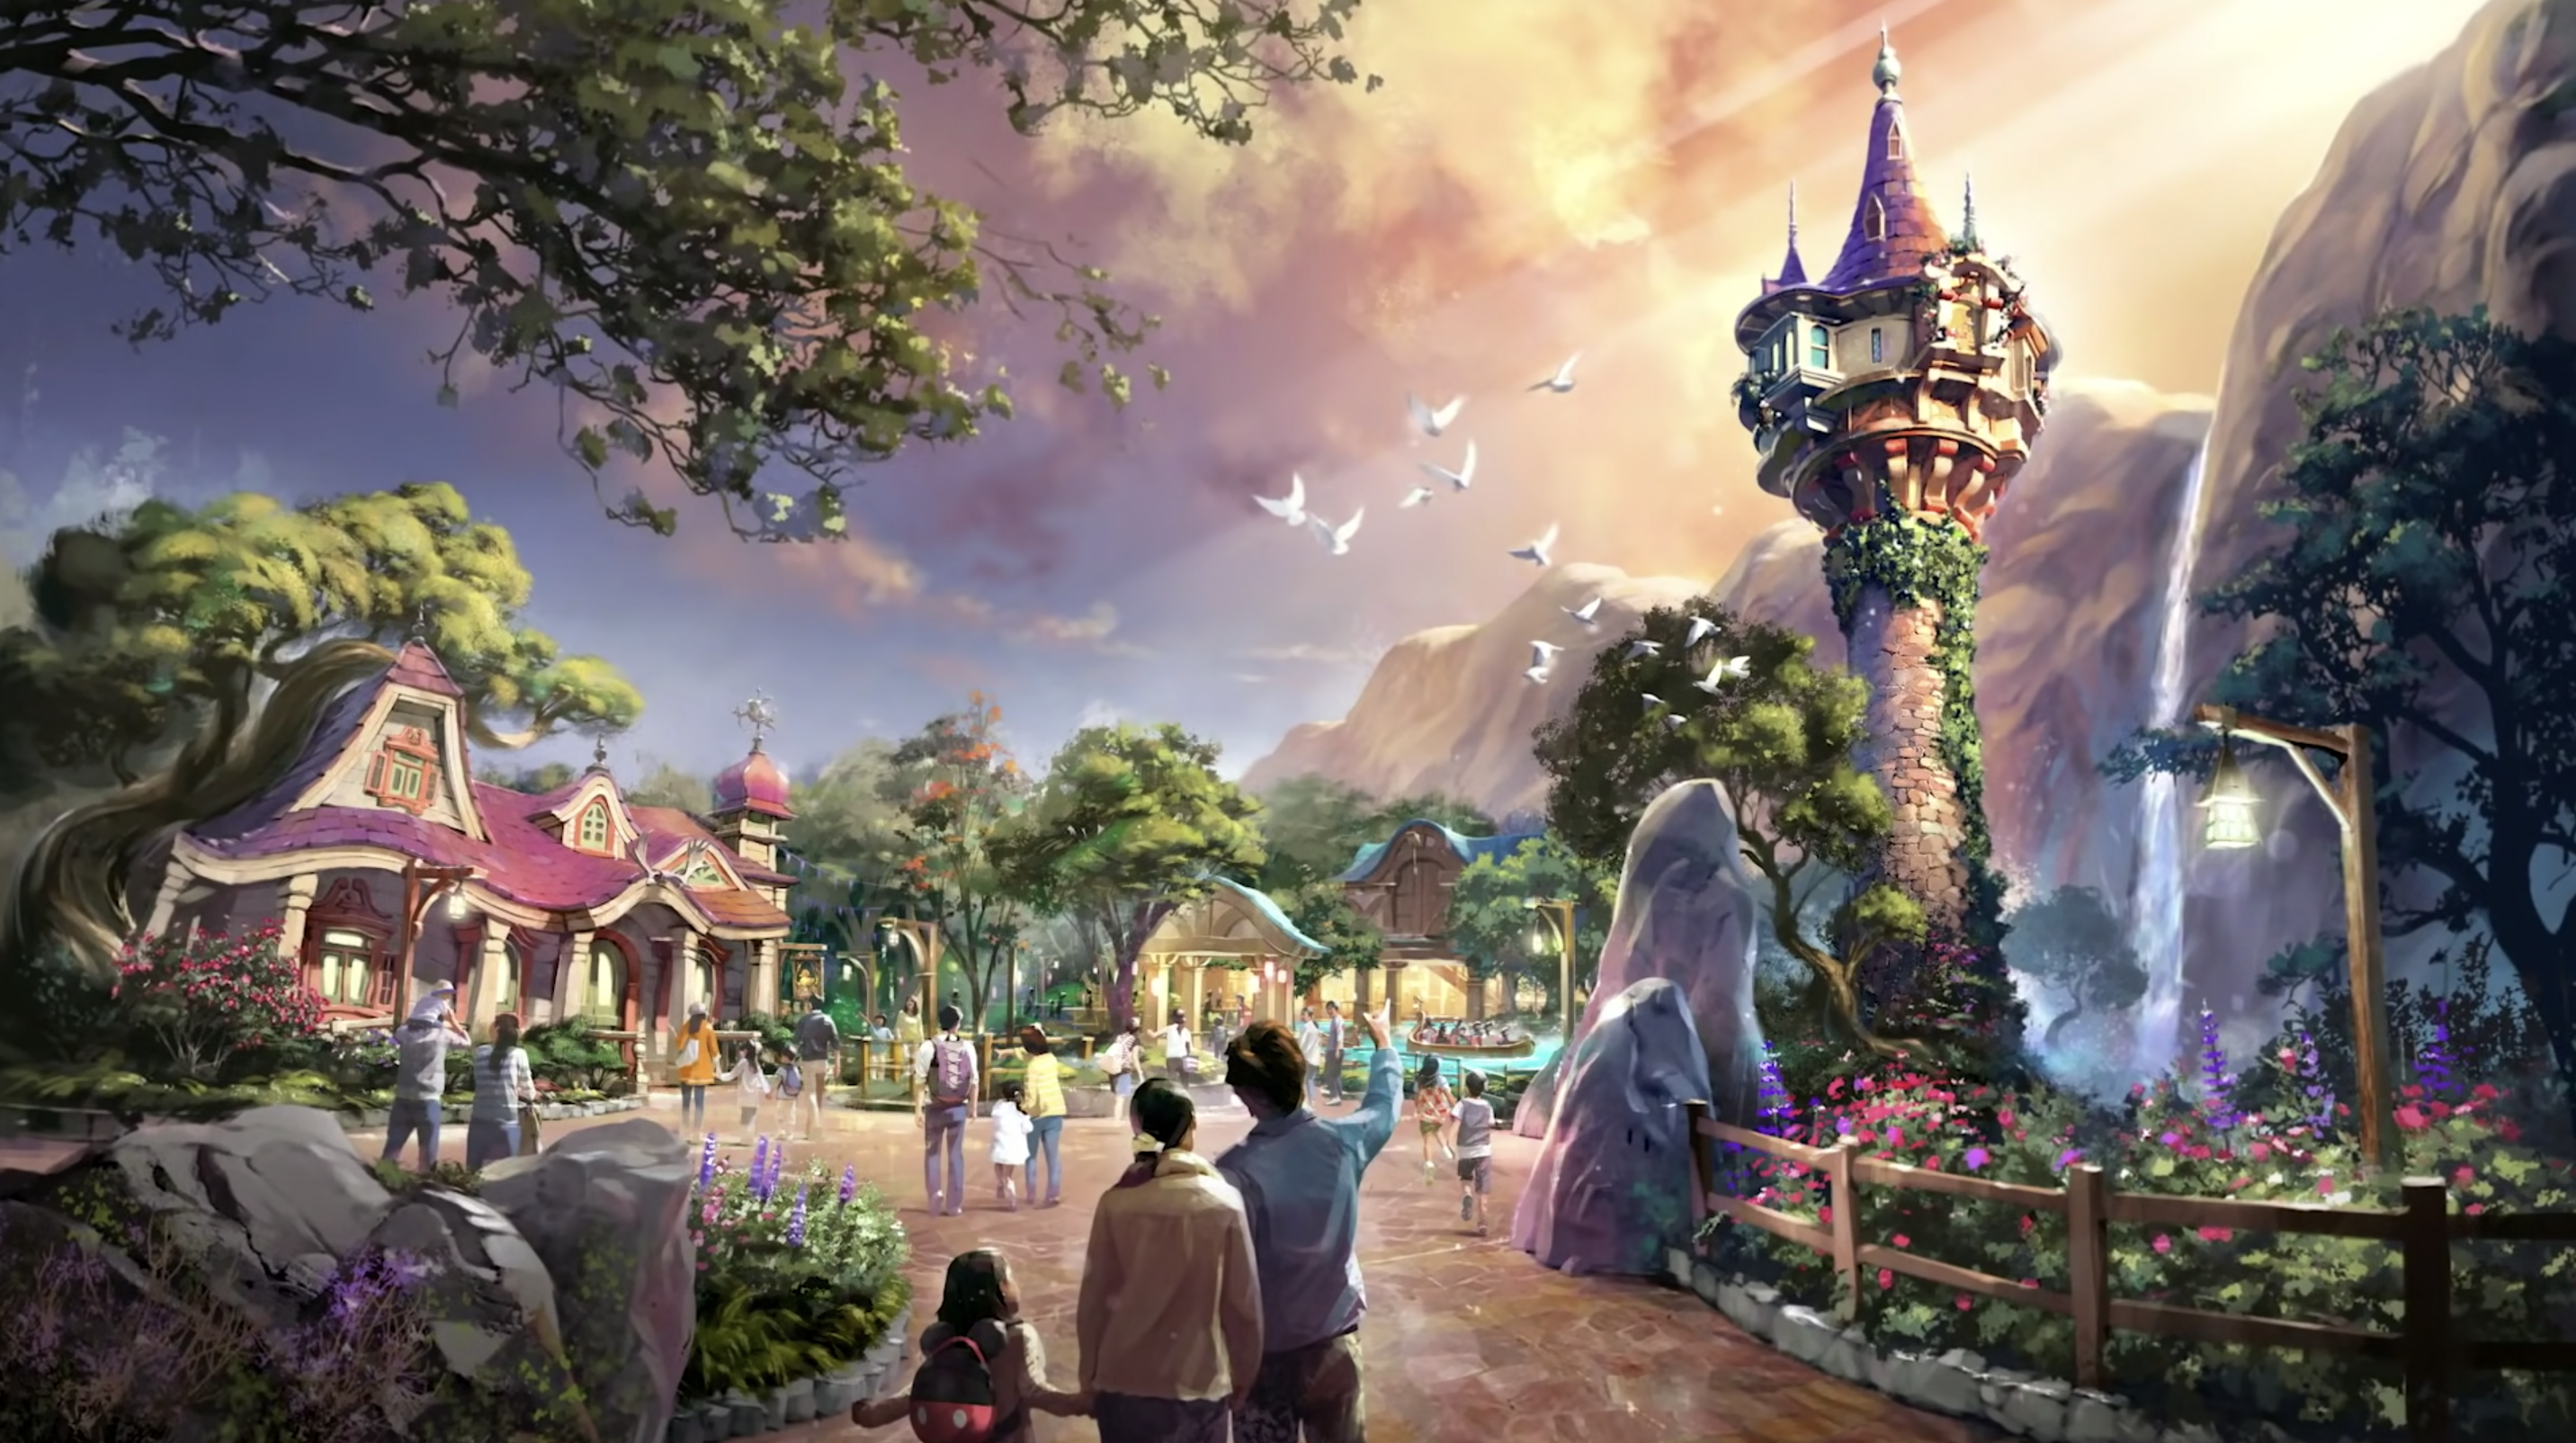 First look: Fantasy Springs at Tokyo DisneySea will feature Frozen, Tangled and Peter Pan